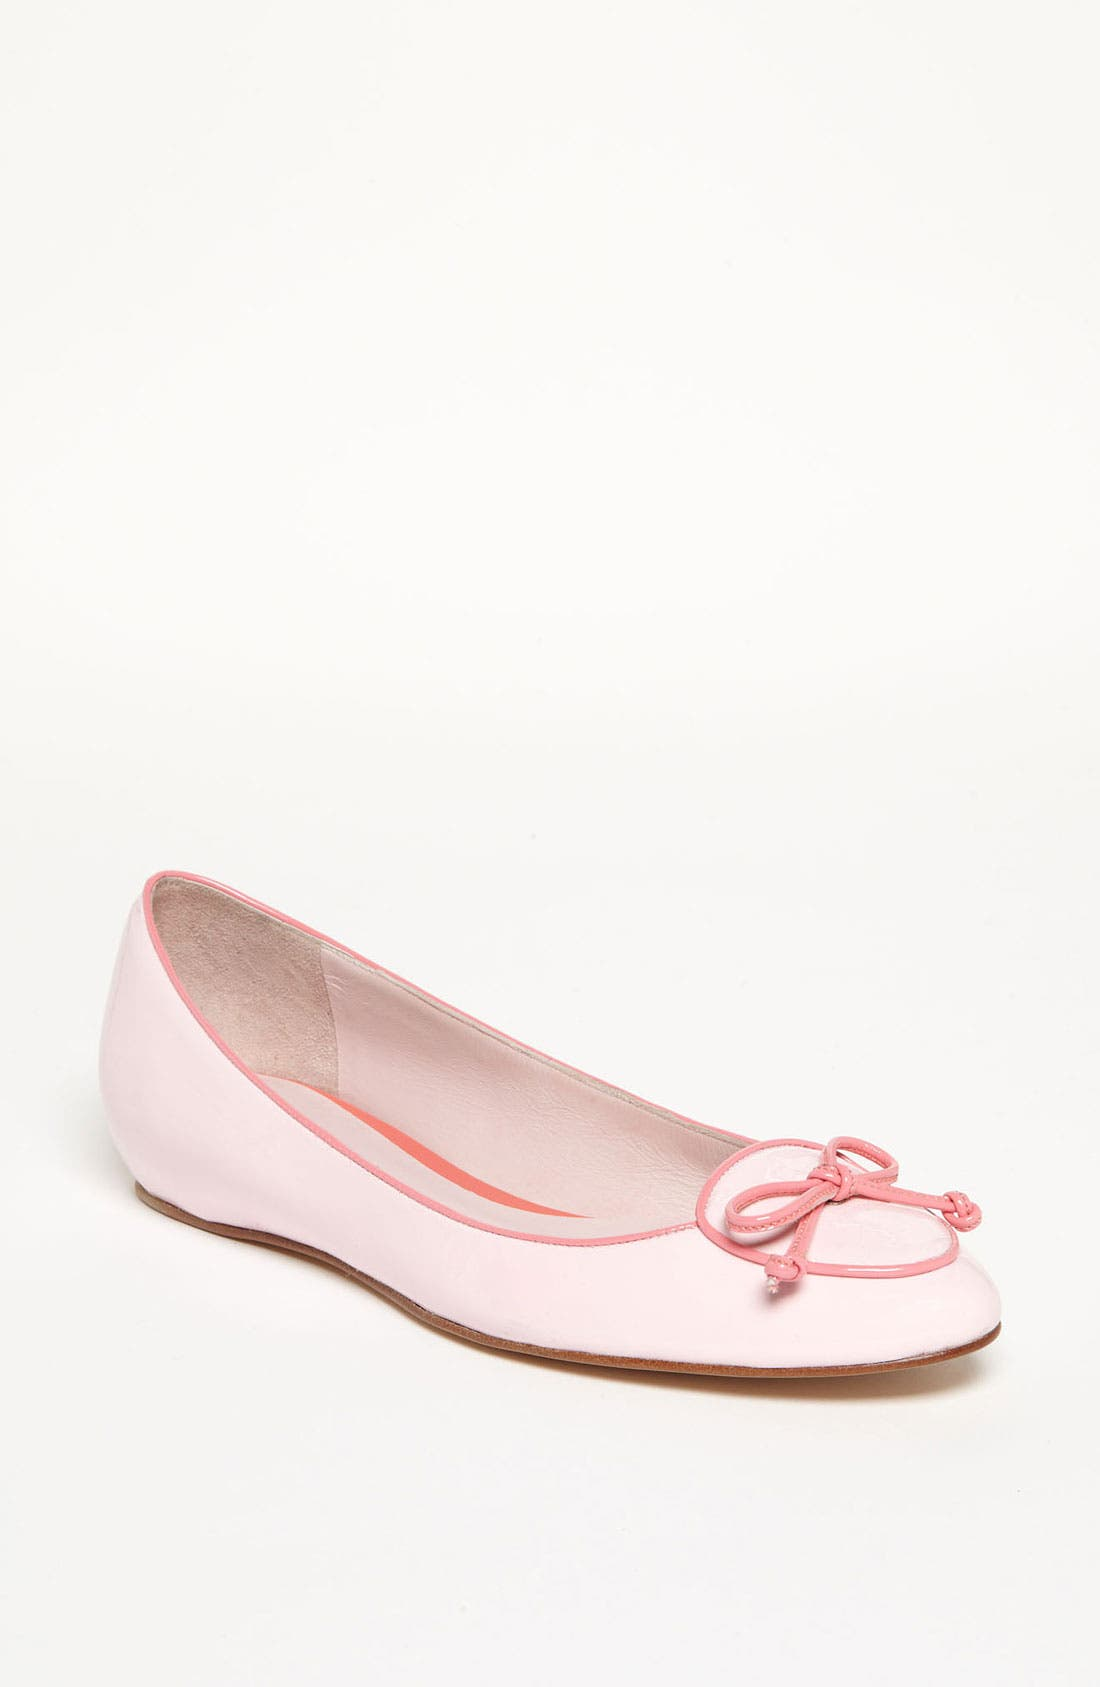 Alternate Image 1 Selected - Delman 'Charm' Flat